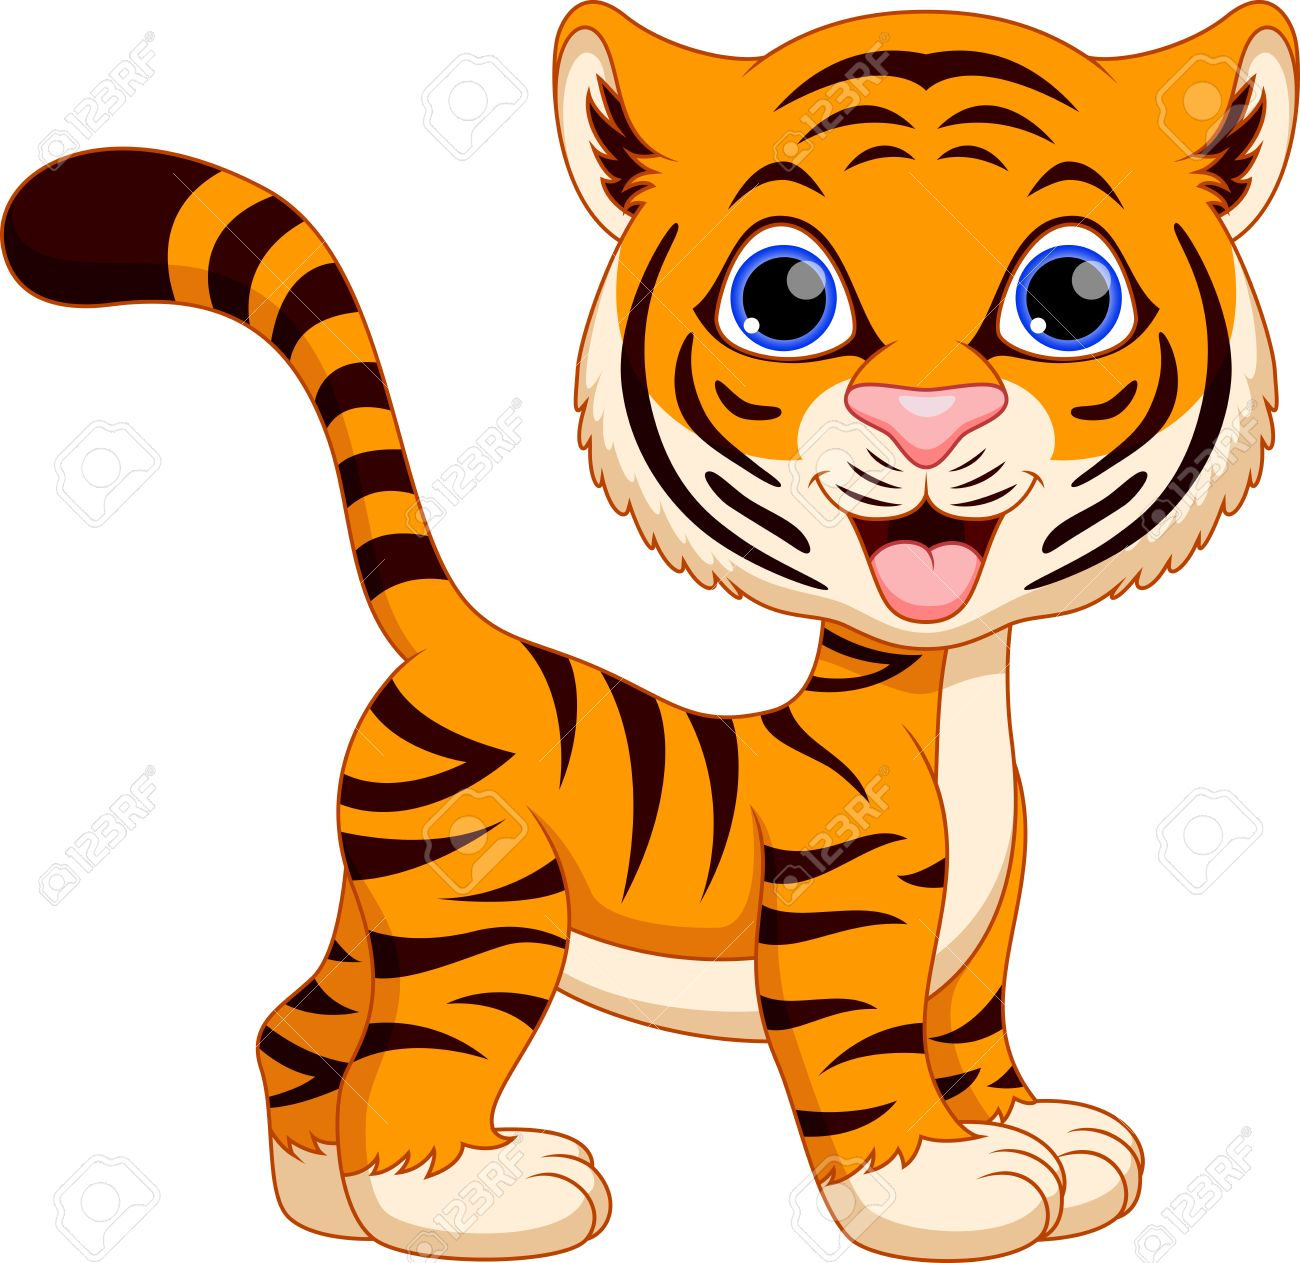 Image result for animated tiger